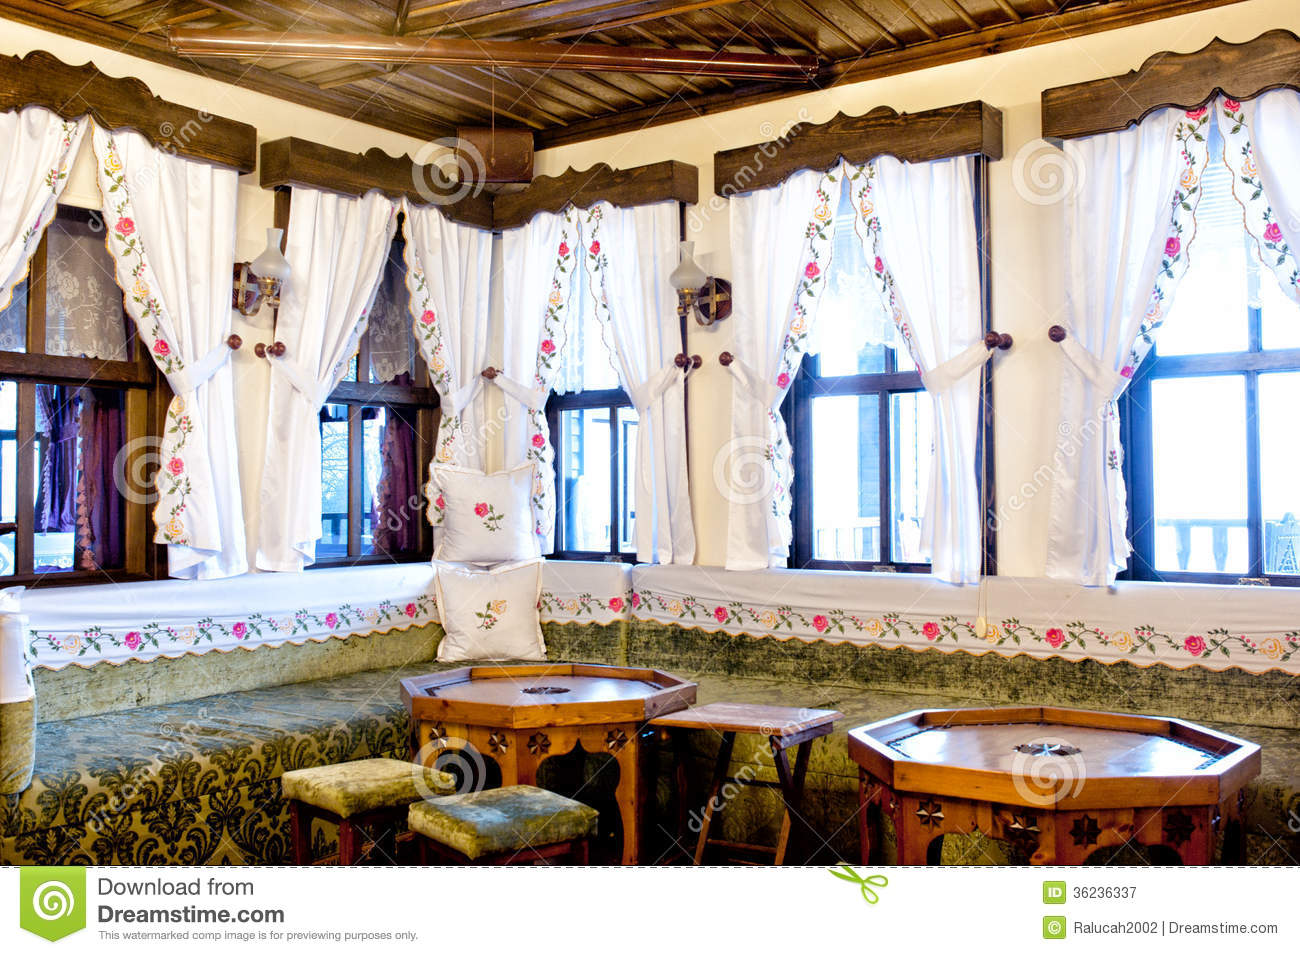 Turkish Traditional Interior Design Bursa Turkey Editorial Photography    Image Of House, Carpet: 36236337